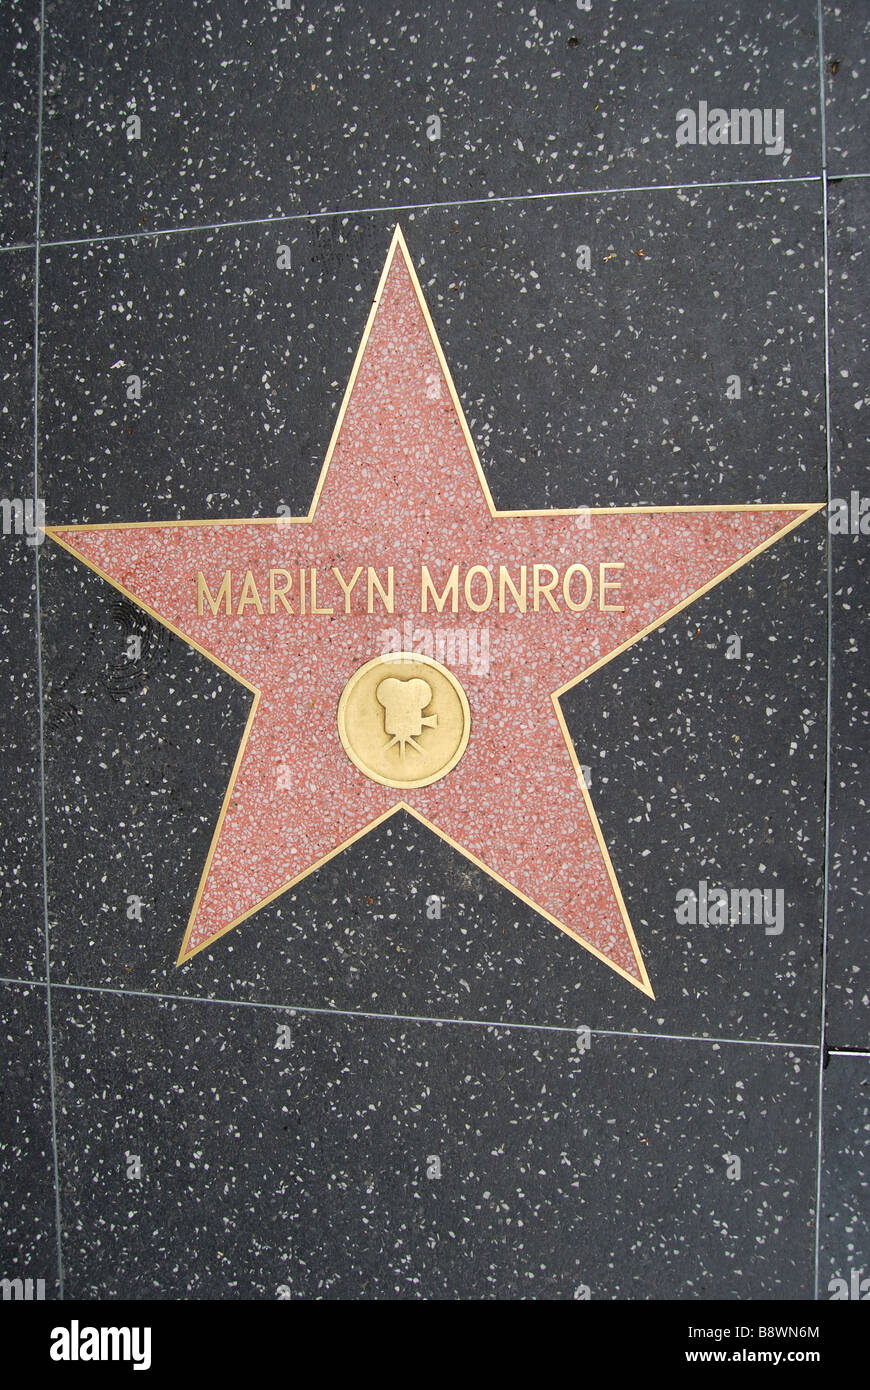 Marilyn Monroe star, Hollywood Walk of Fame, Hollywood Boulevard, Hollywood, Los Angeles, California, United States - Stock Image